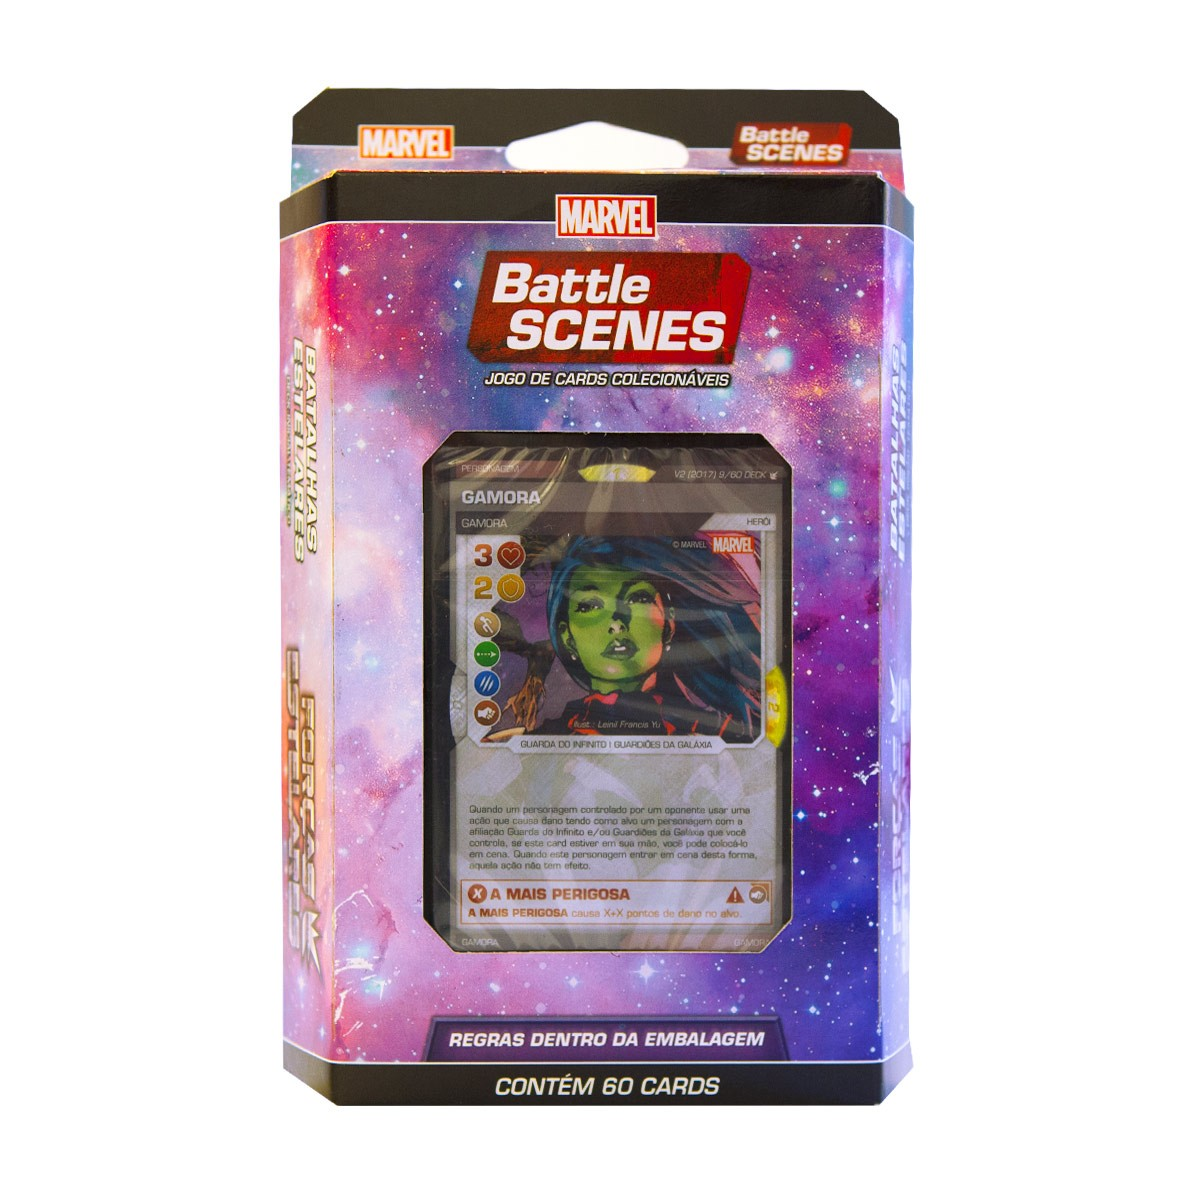 Shop customer account create admin cms_wysiwyg directive index/admin/Cms_Wysiwyg/directive - Starter Deck Battle Scenes For As Estelares Gamora